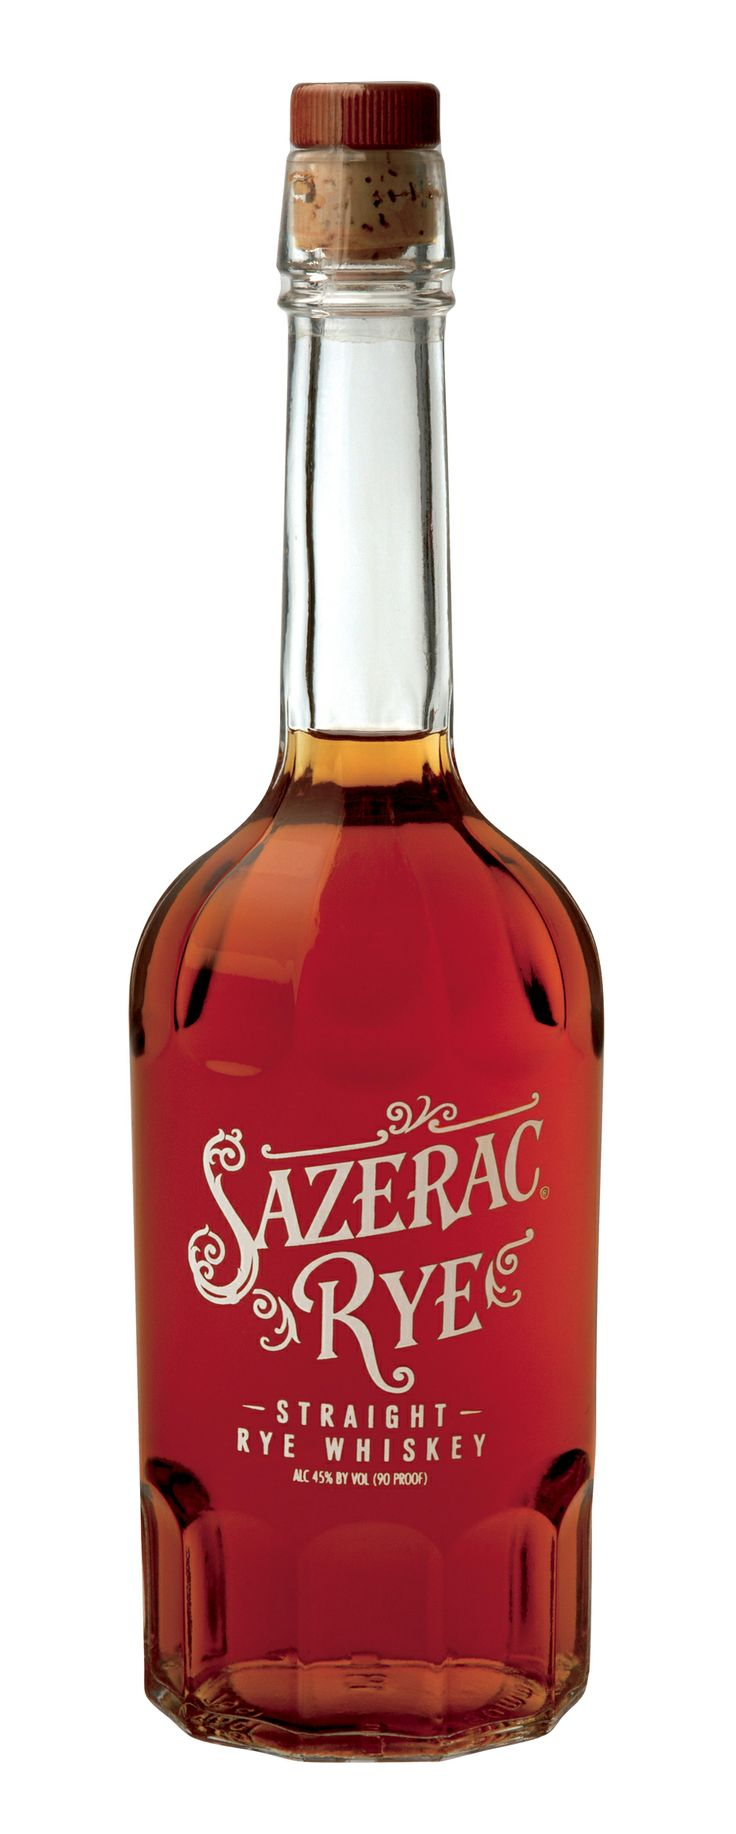 Sazerac Rye Whiskey: This reminds me a lot of Whistle Pig, and that's just fine. Sazerac's expression is quite smooth, and its emphasis on sweetness instead of rye's characteristic spiciness might make it more welcoming to new rye drinkers. I'm more into the spicy ryes, but there's nothing wrong with sweetness for a change of pace. $40.